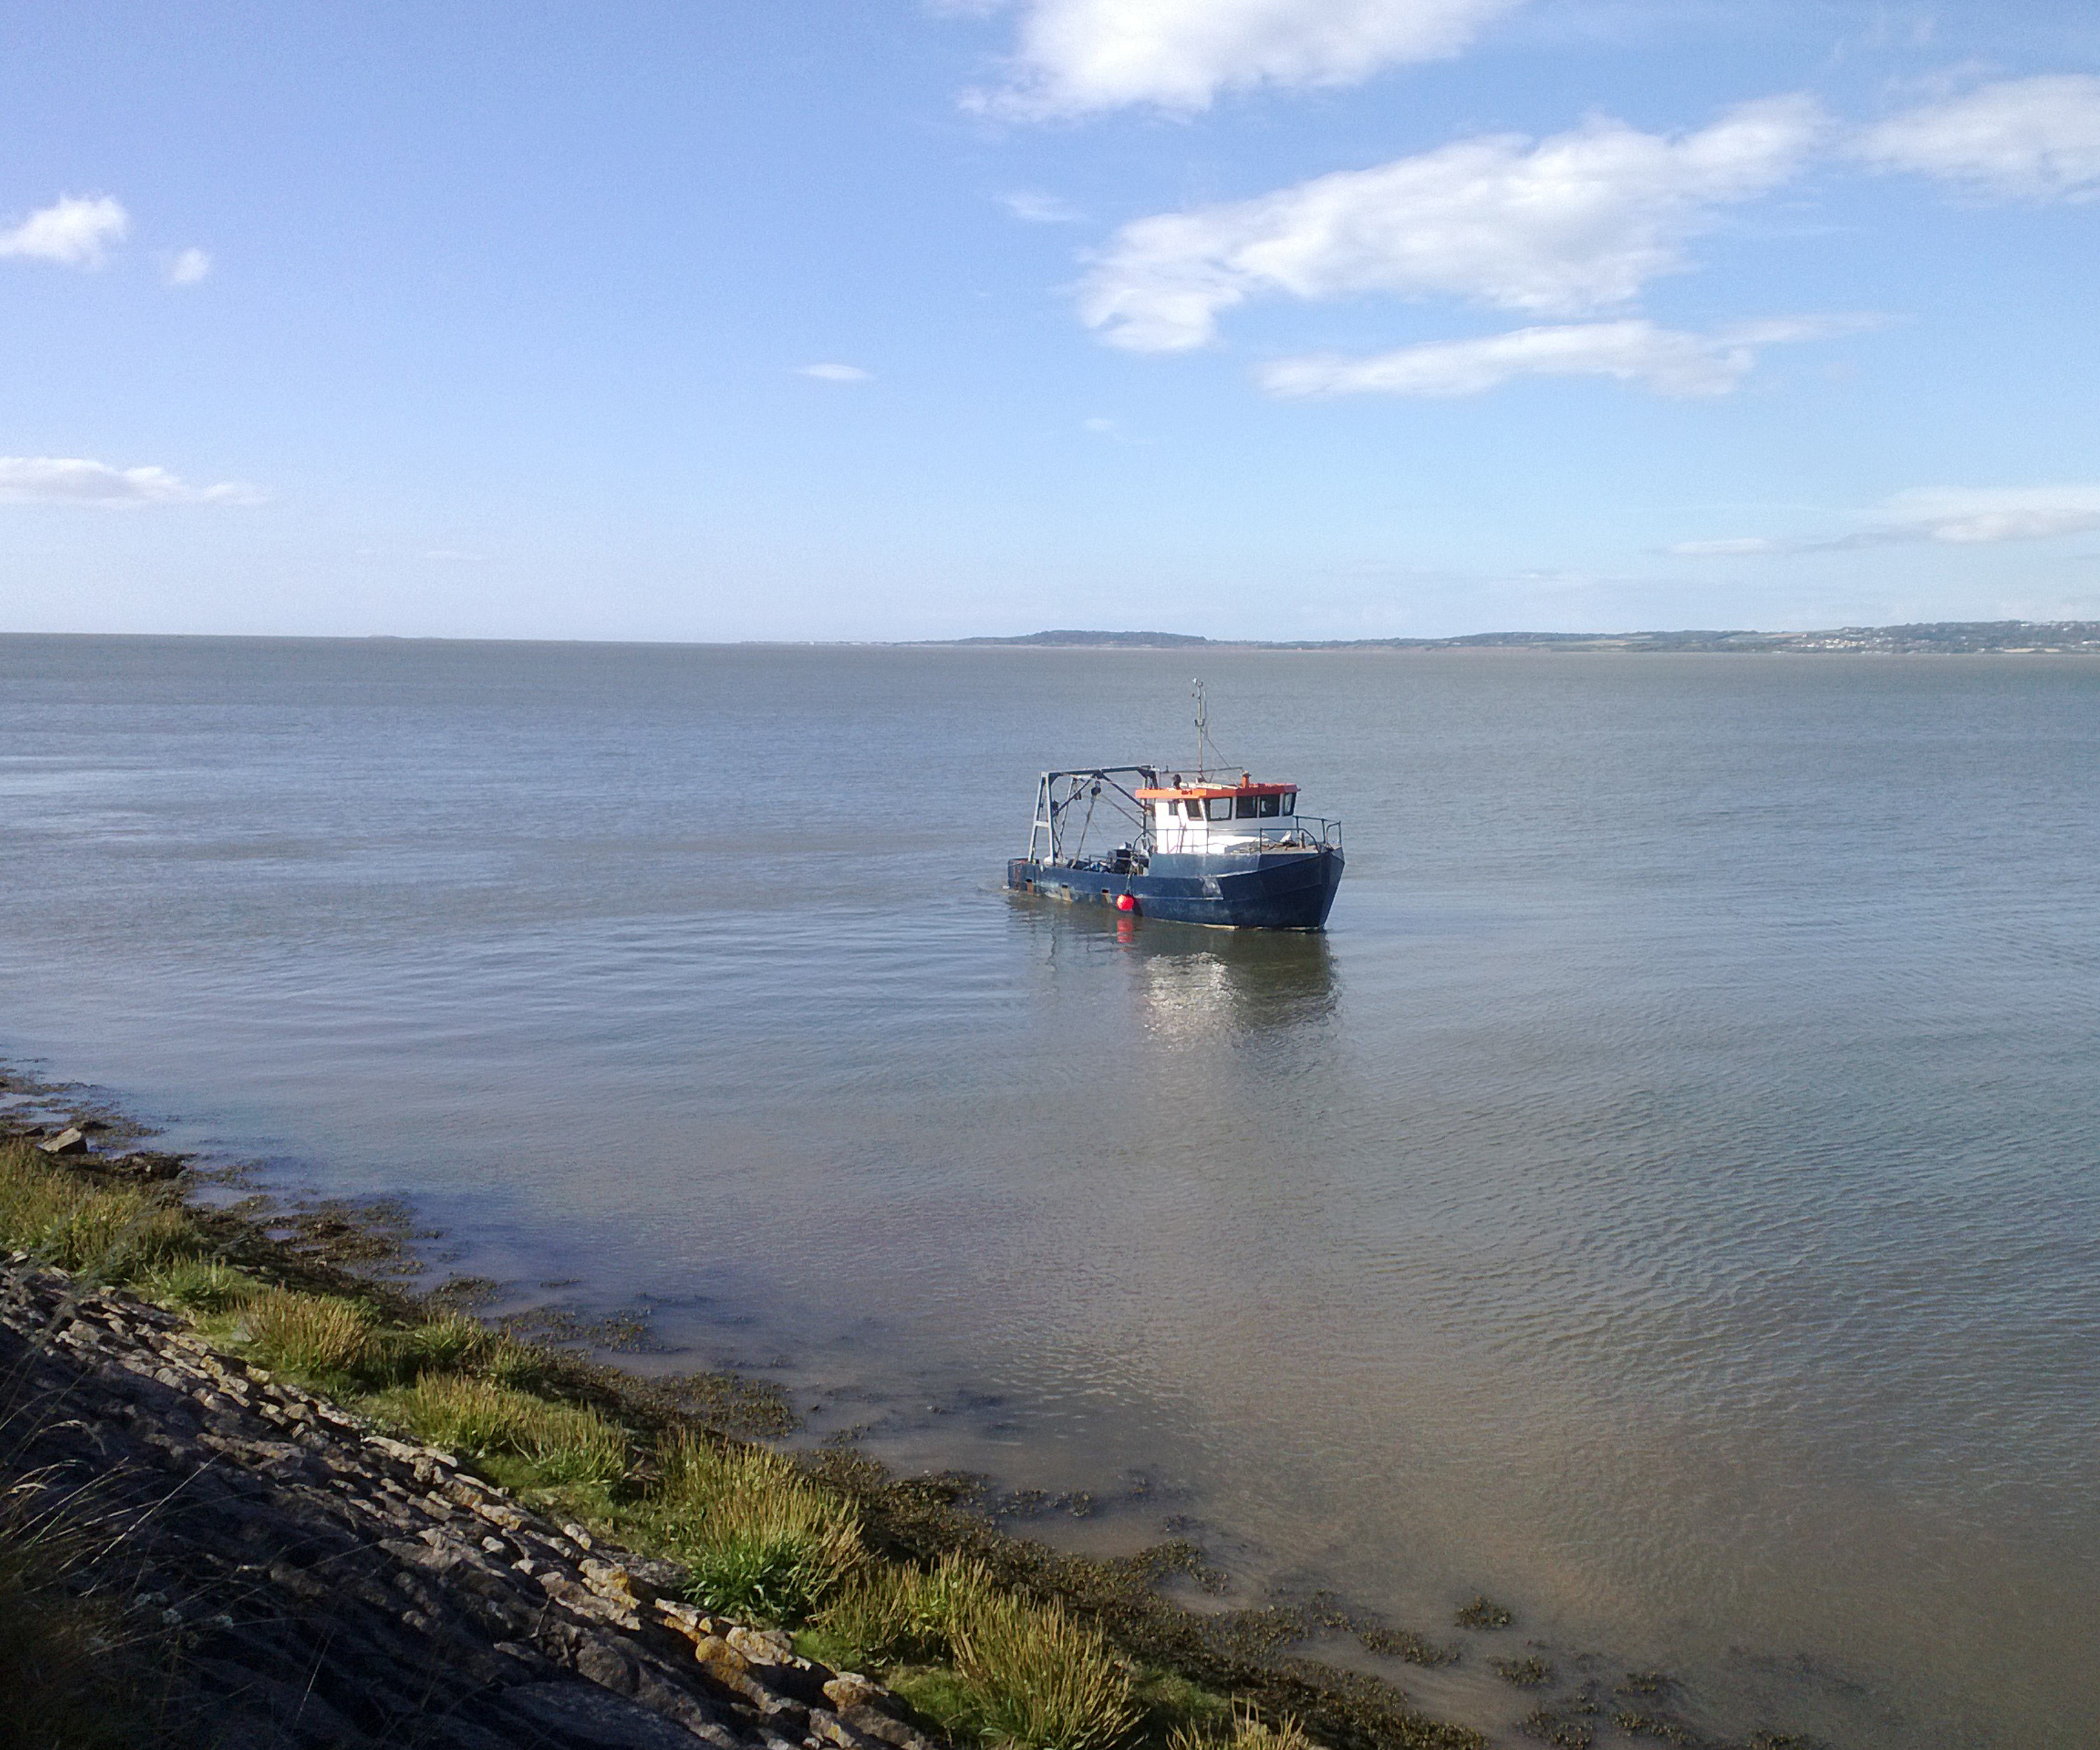 Janey navigating the Dee estuary